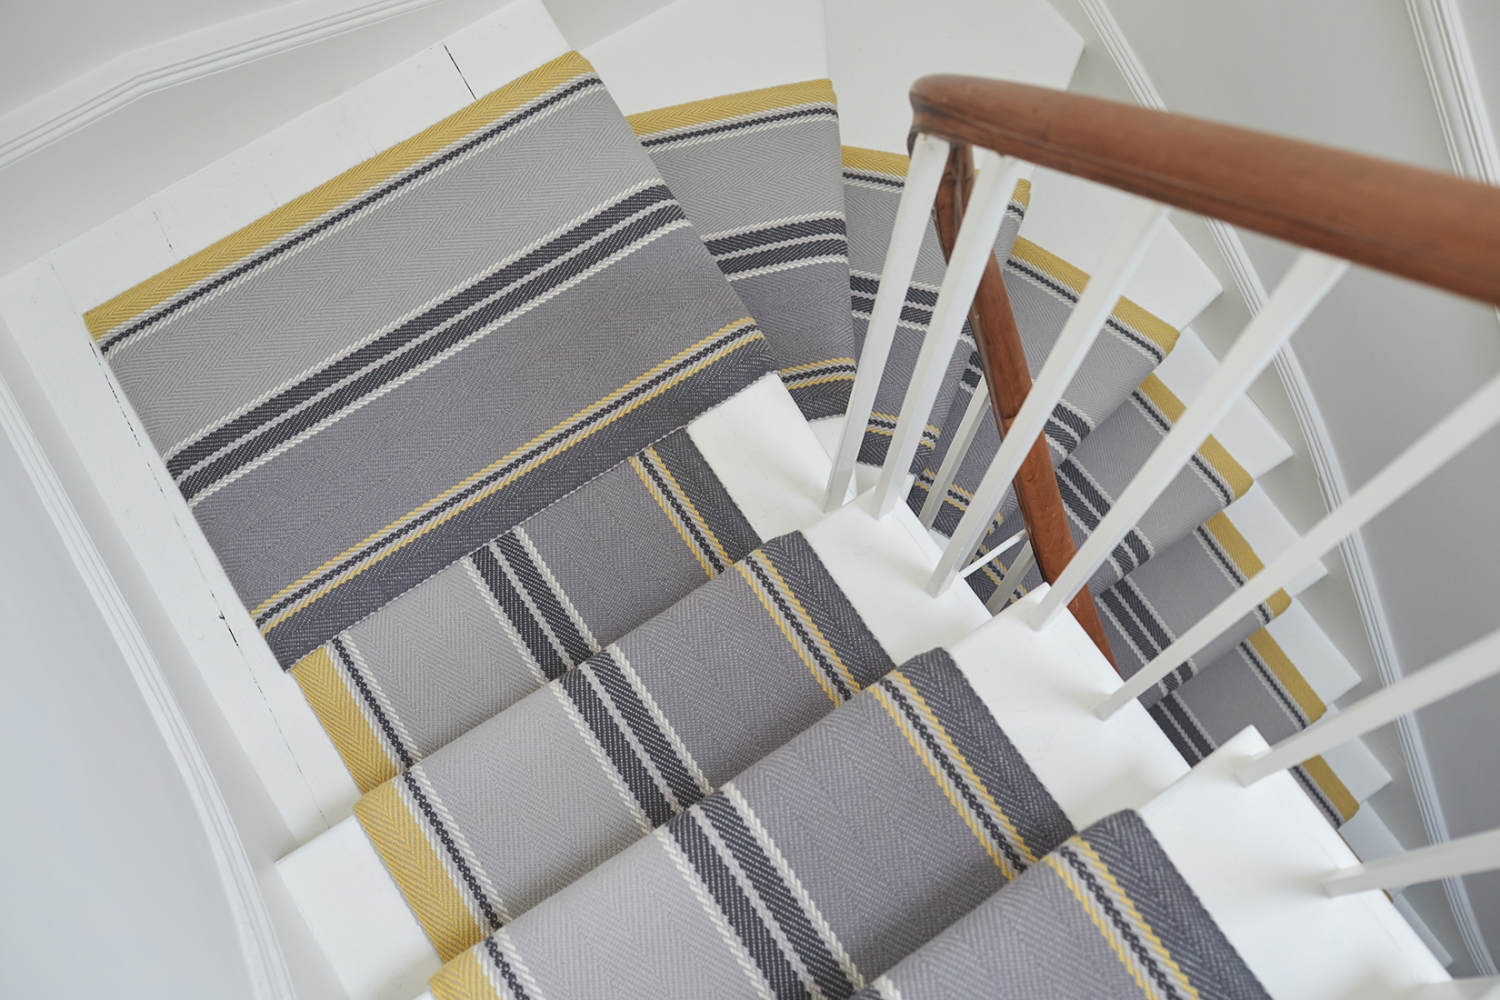 Frequently Asked Questions Roger Oates Design Runners And Rugs   Felt Back Carpet On Stairs   Stair Treads   Loop Feltback   Rolls Flecked   Purple   Flooring